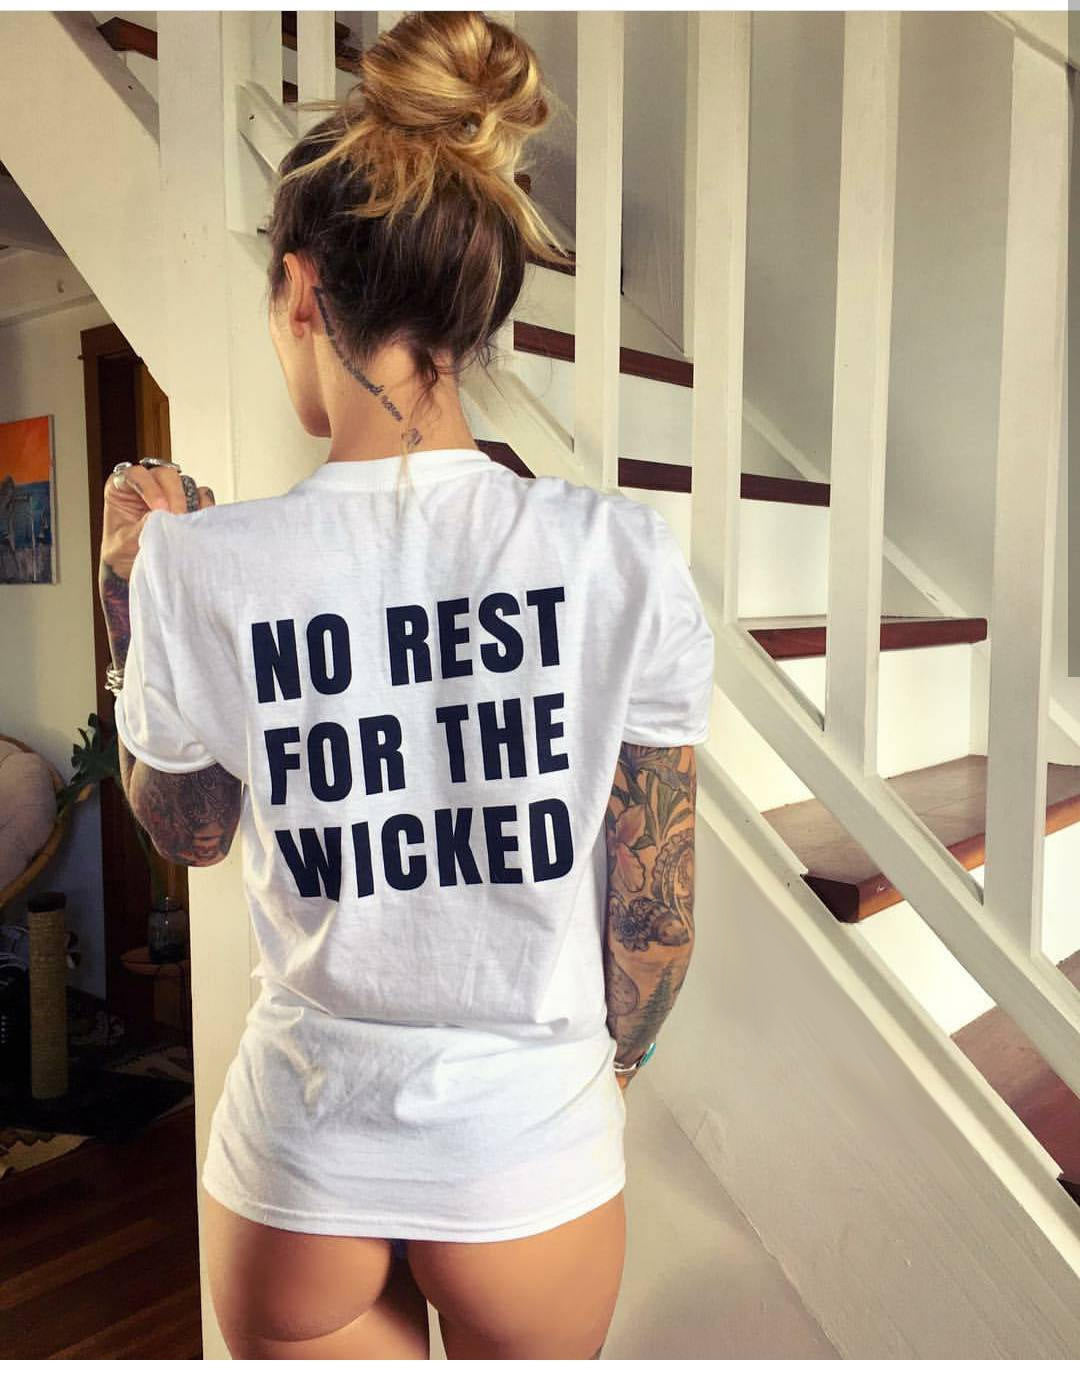 No rest for the wicked T-shirt - Urbantshirts.co.uk